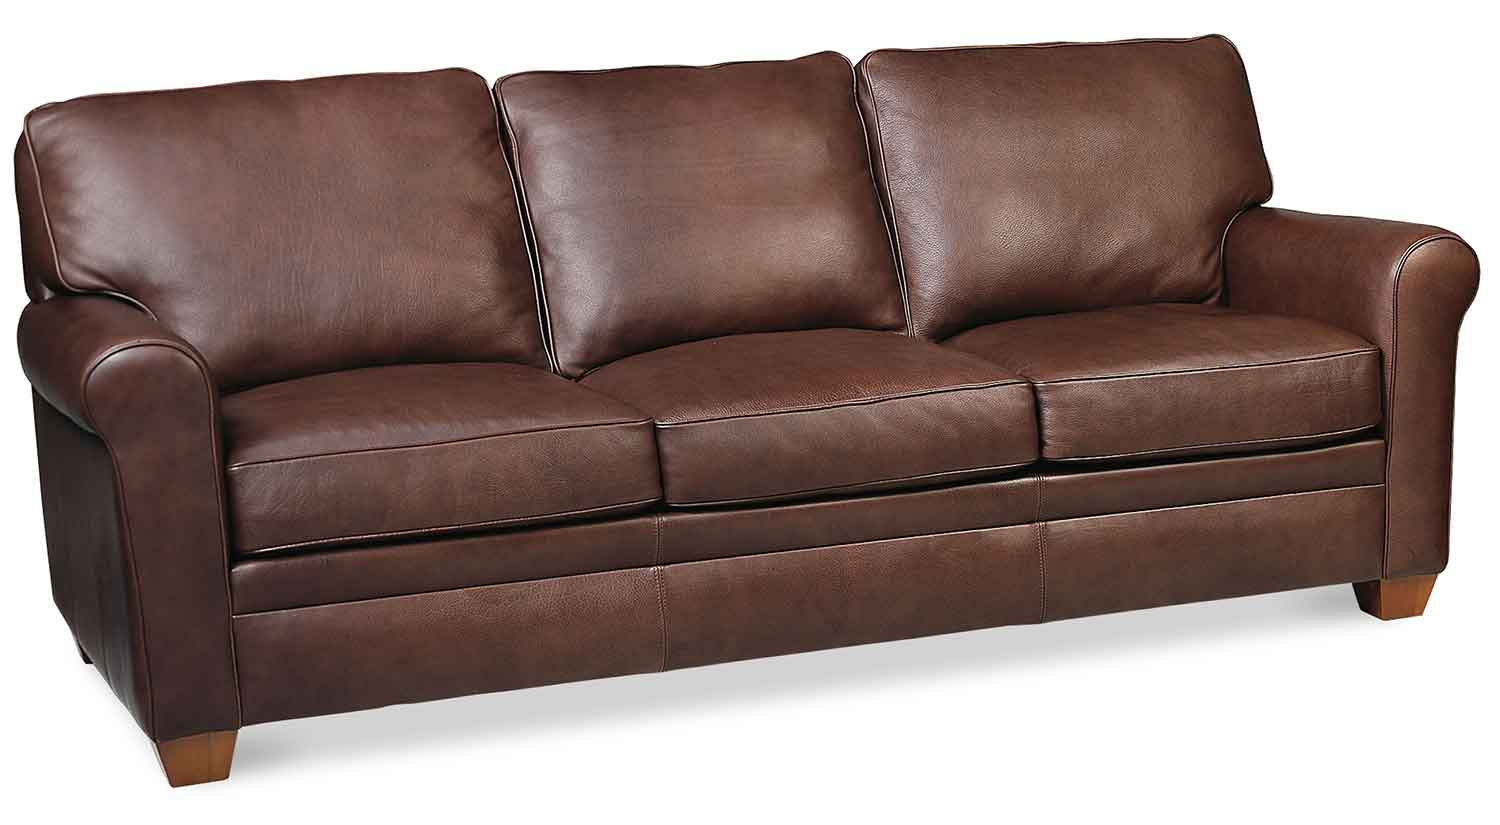 Circle furniture braxton sofa leather sofas danvers for Furniture leather sofa